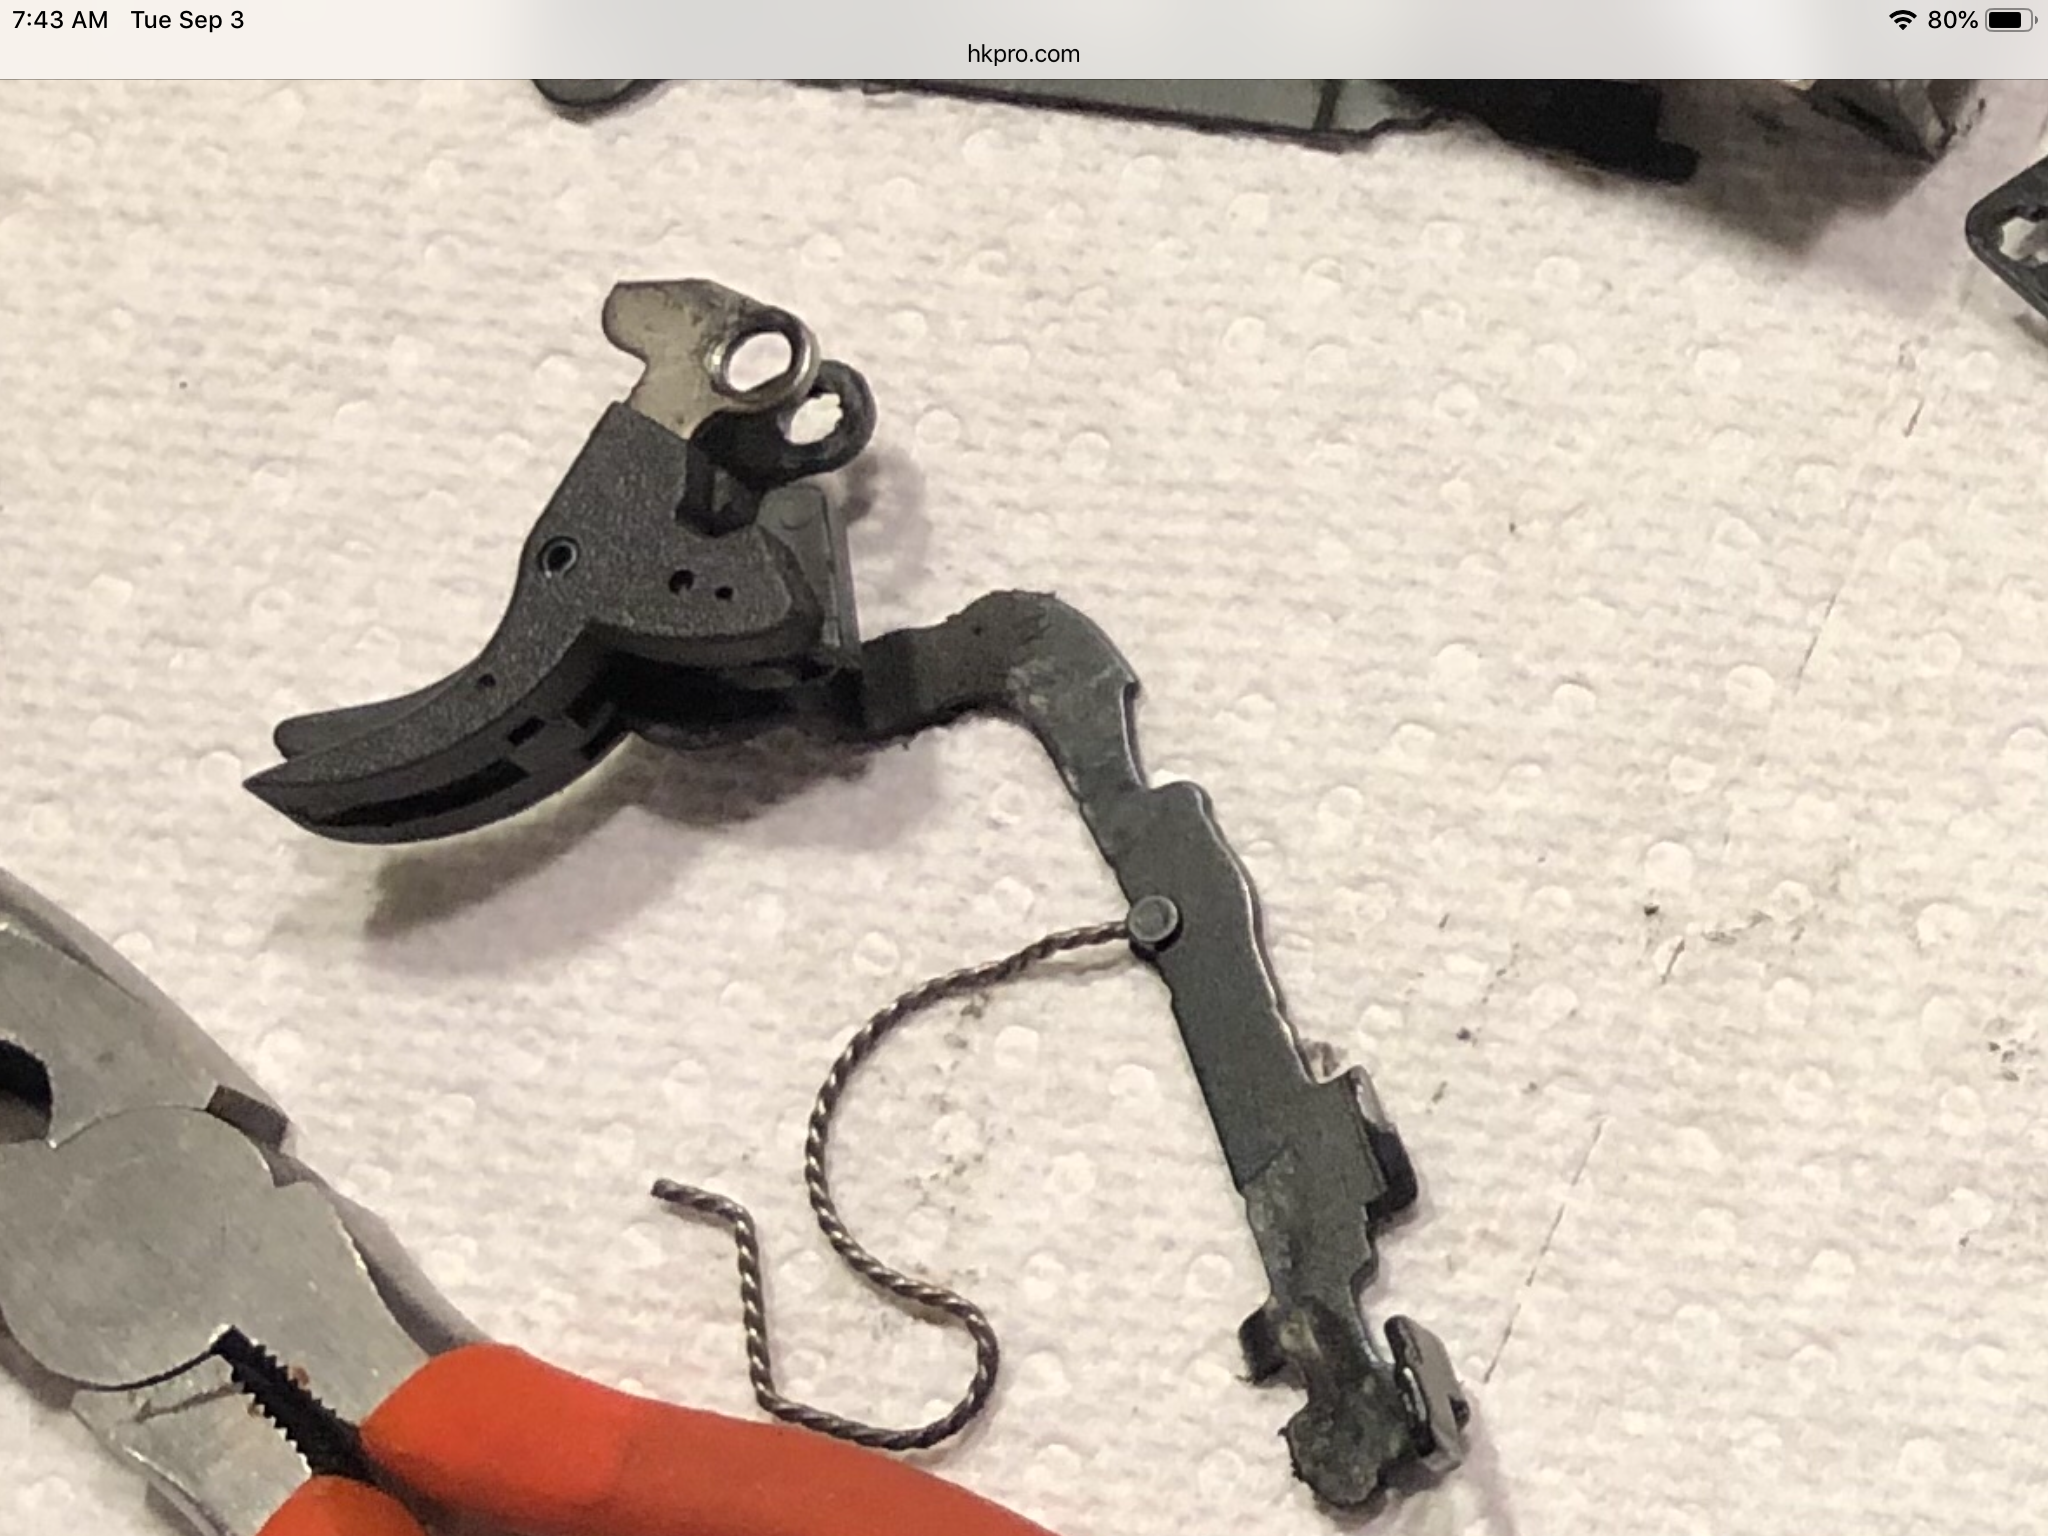 Another HK VP9 Trigger Bar Spring Failure-4098041c-4266-4f1f-accc-e833ee95f844.png